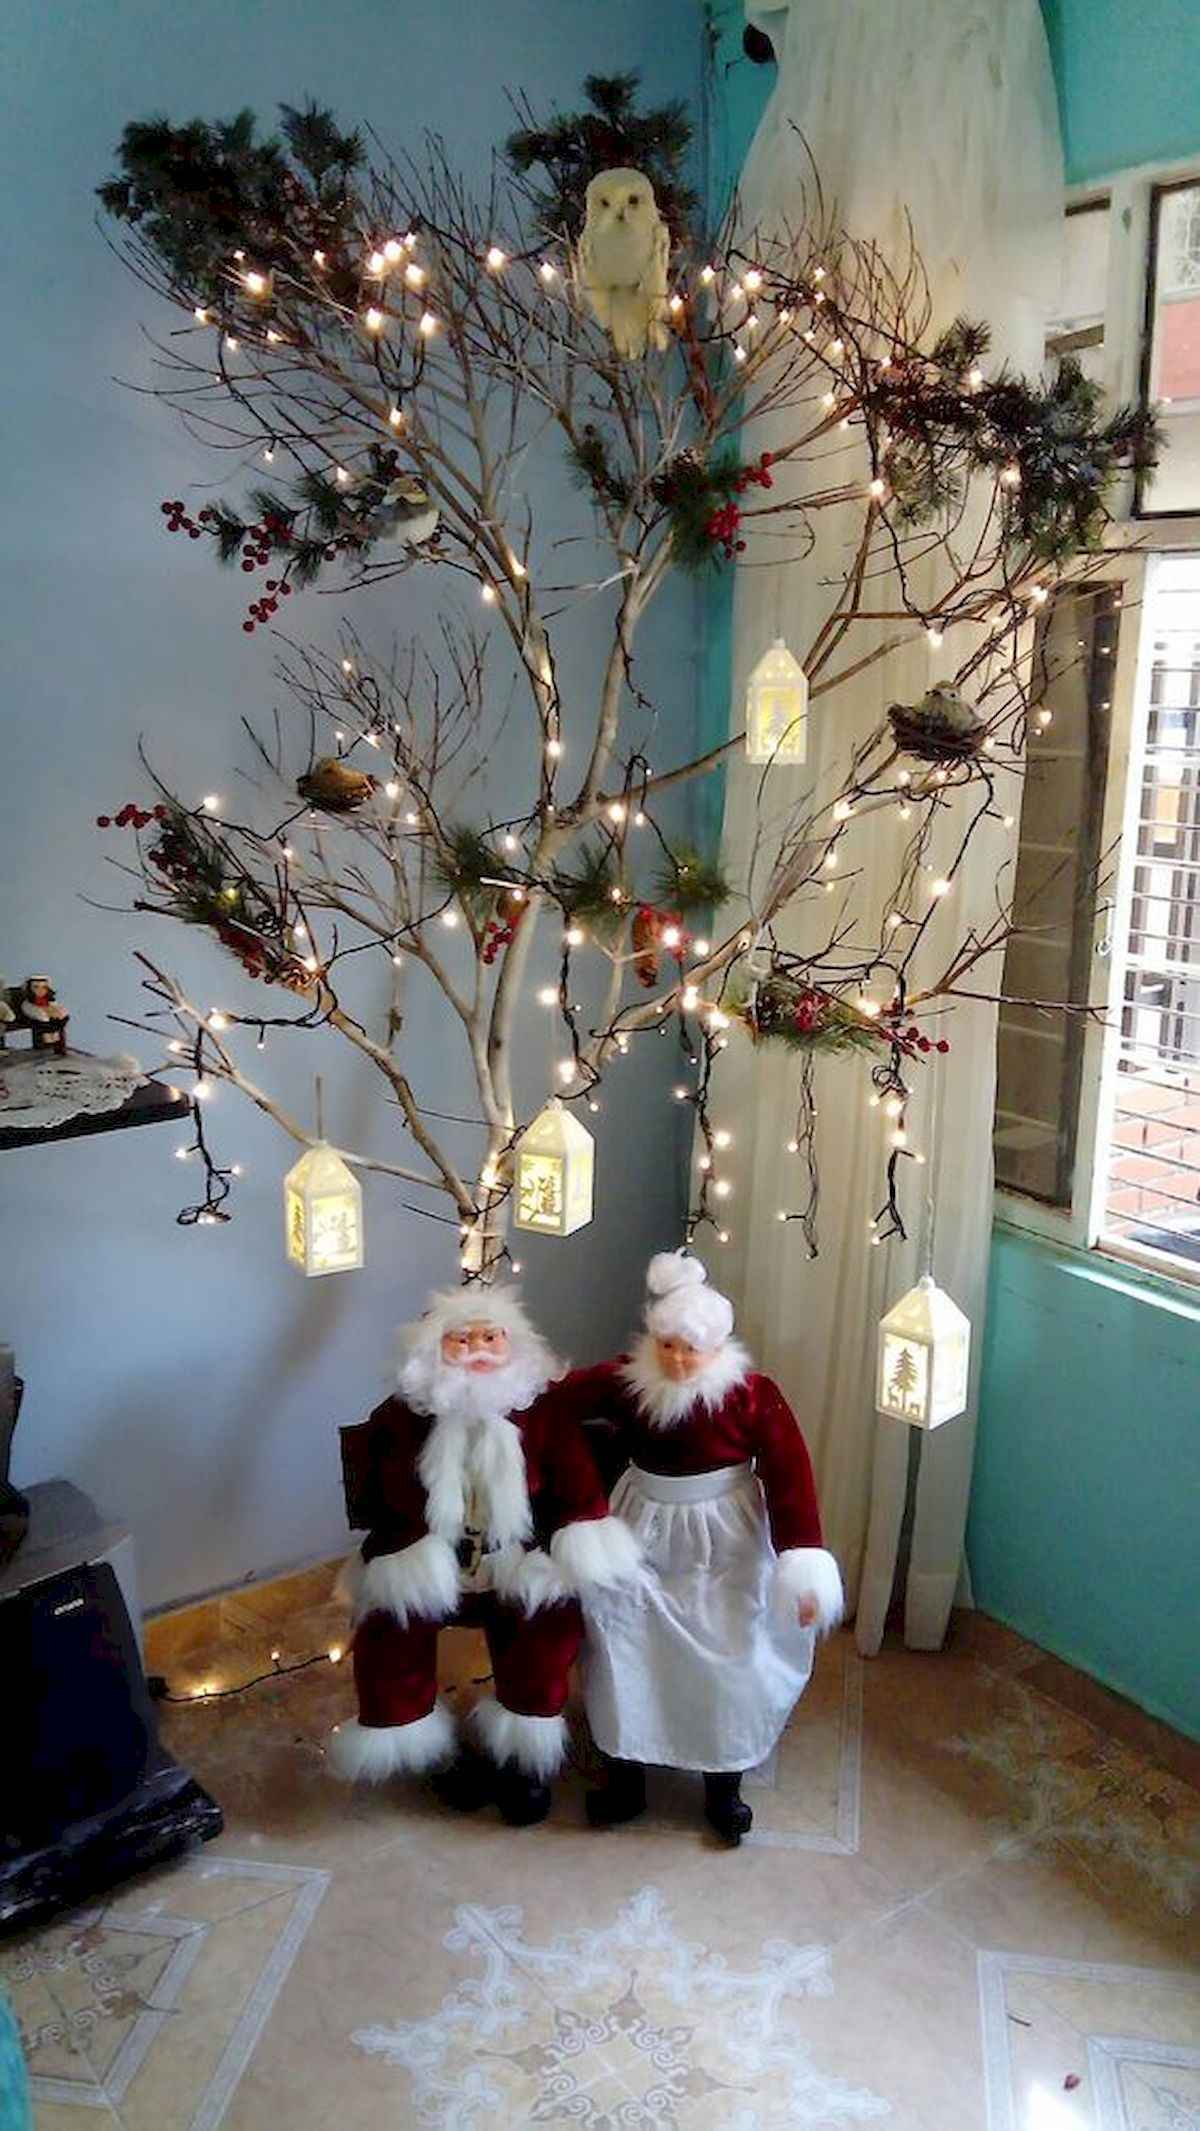 60 awesome christmas tree decorations ideas (46)